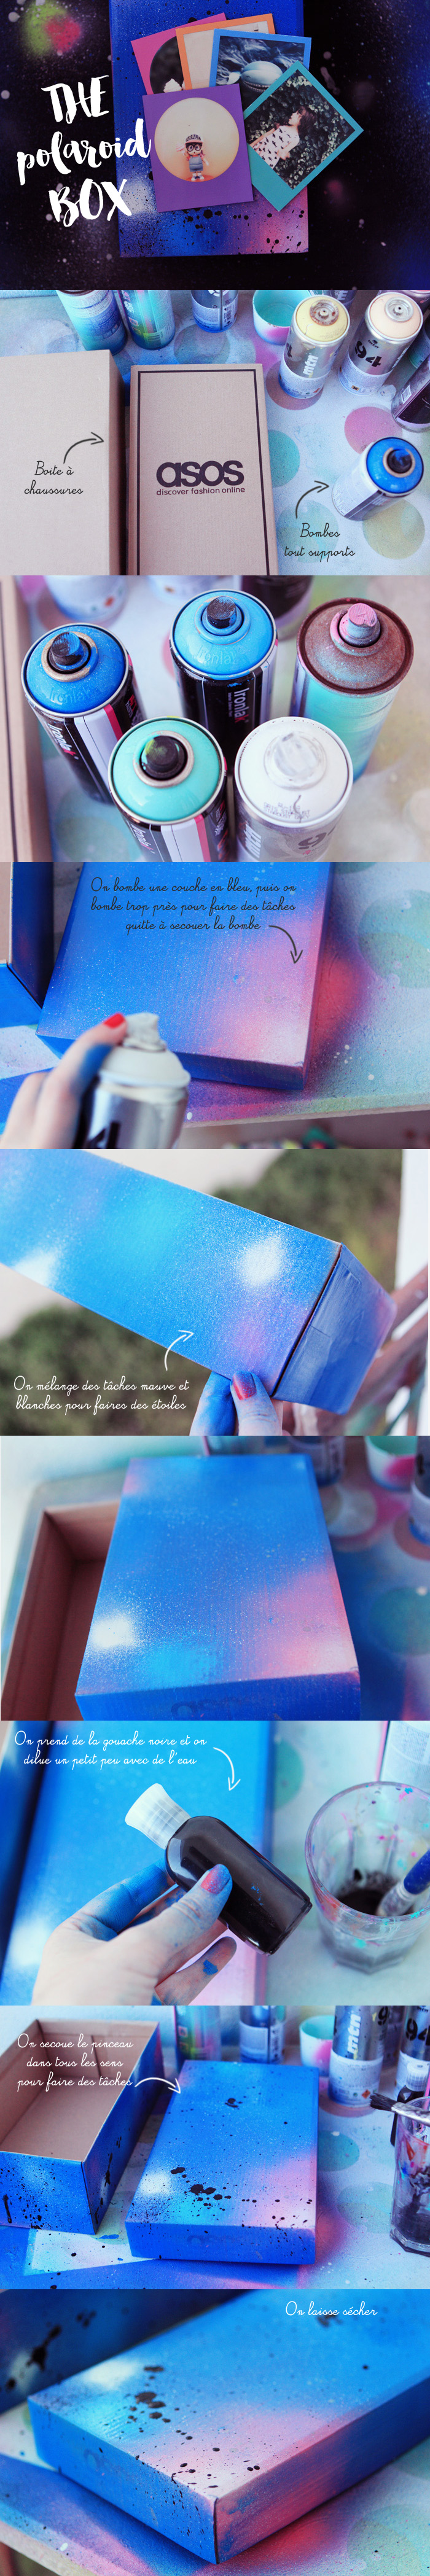 diy-galaxie-box-polaroid poulette magique